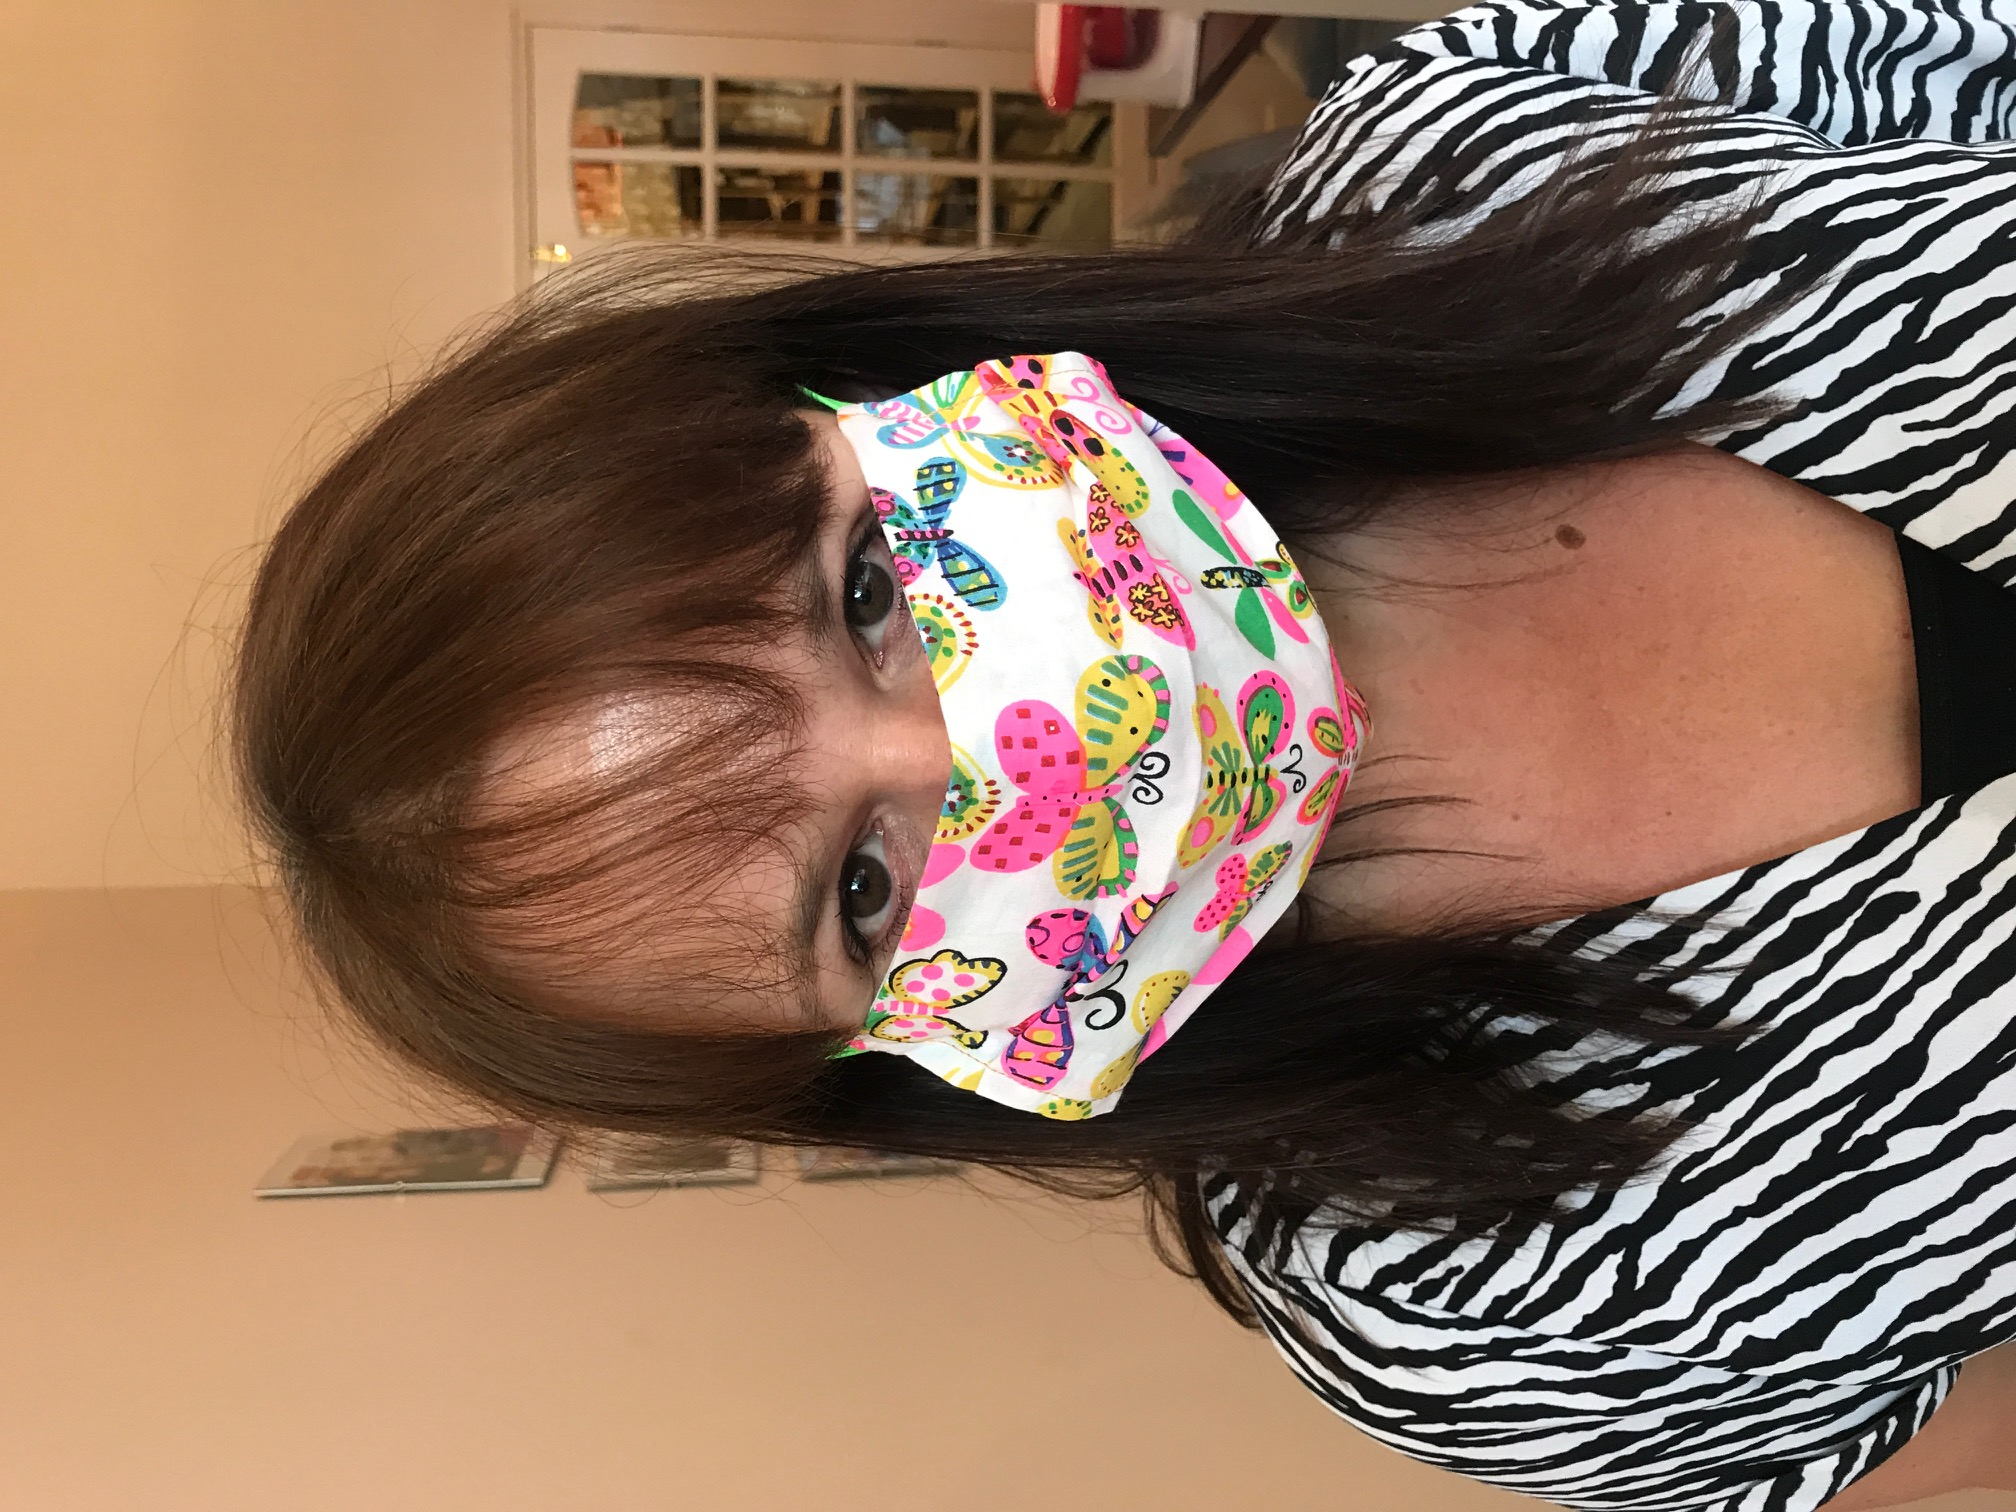 Above: Claire Williams, co-owner of Paper Salad in a mask made out of fabric printed with the publisher's designs.